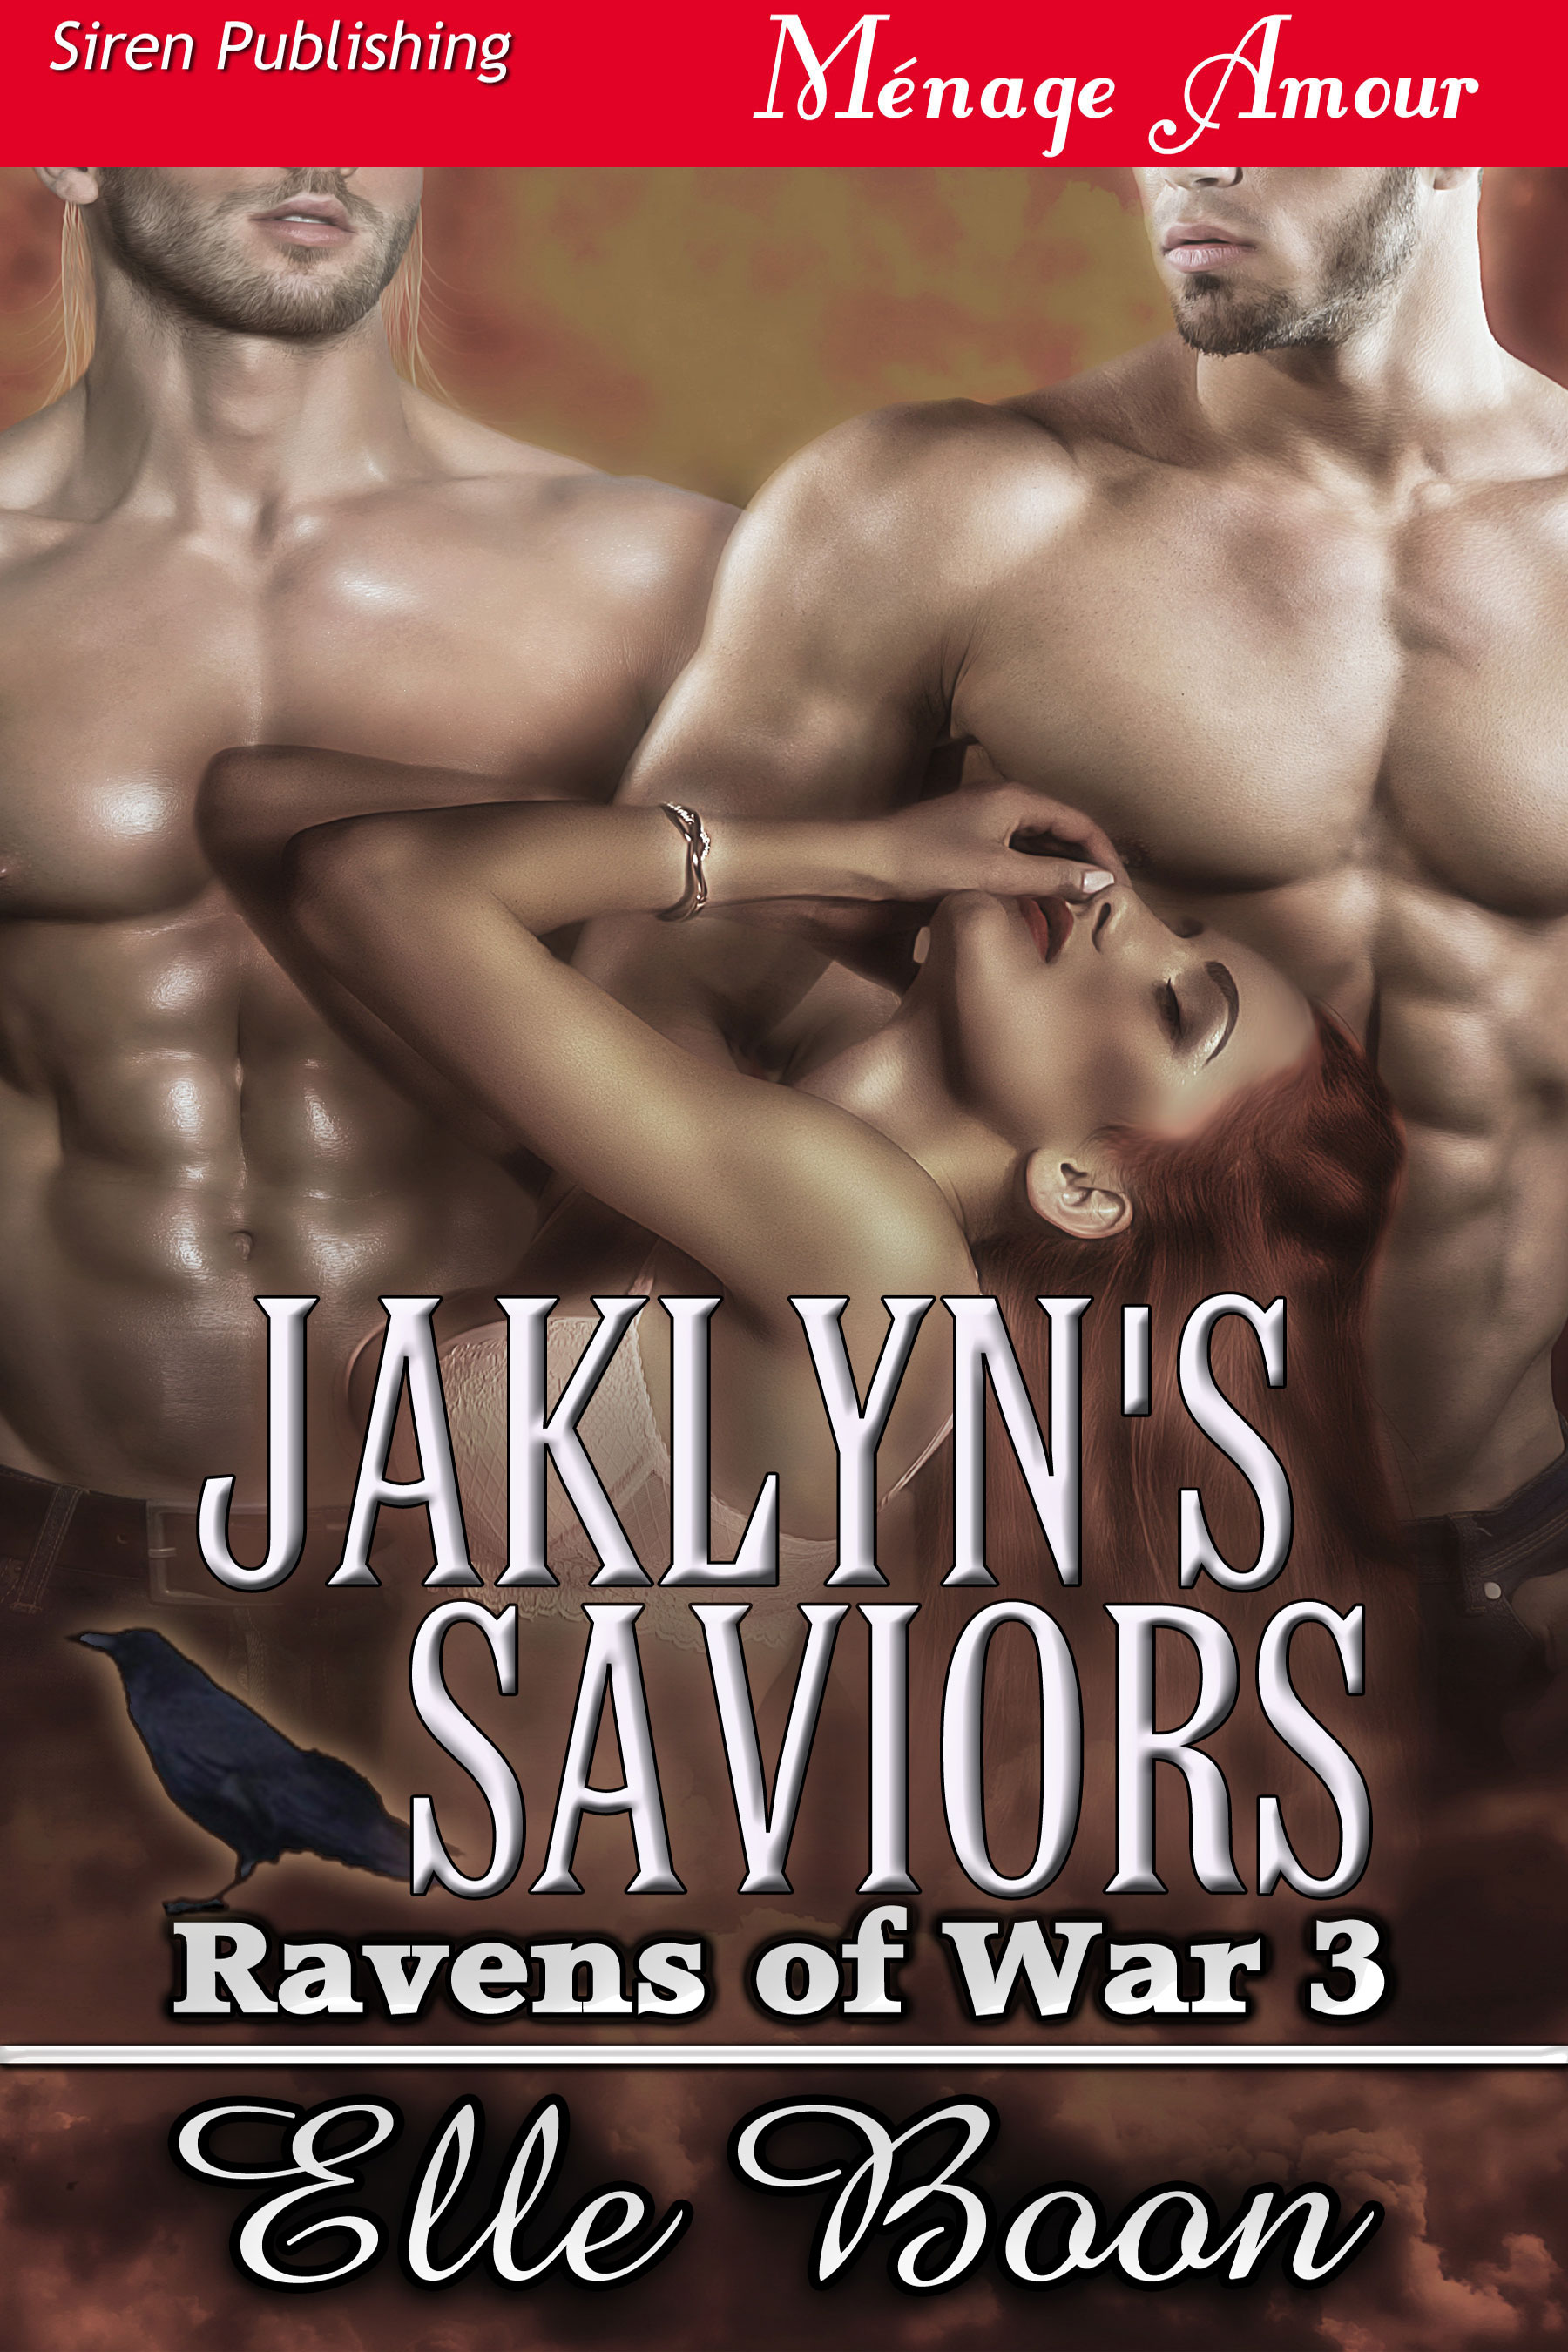 It's here! Elle Boon's hot new release!